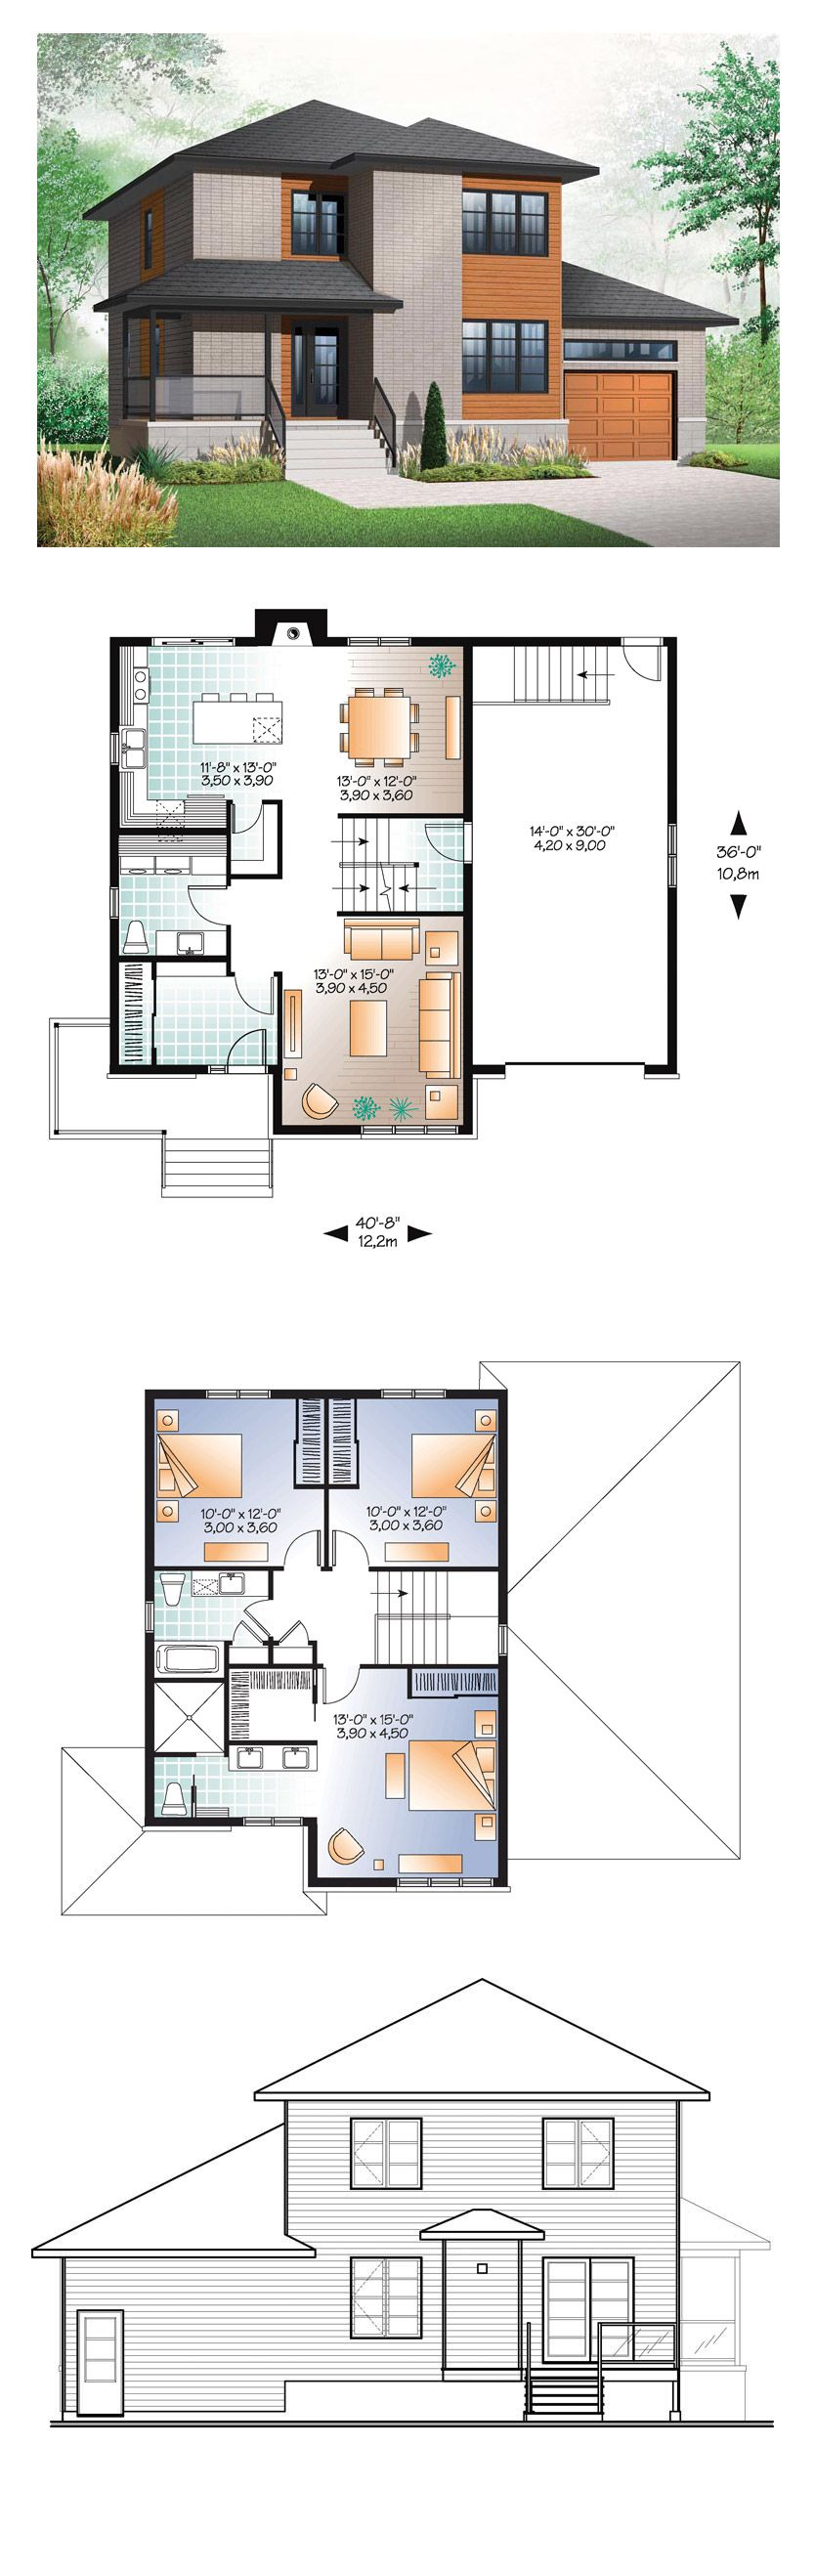 Modern House Plan 76324 | Total Living Area: 1768 sq. ft., 3 bedrooms and 2.5 bathrooms. #modernhome